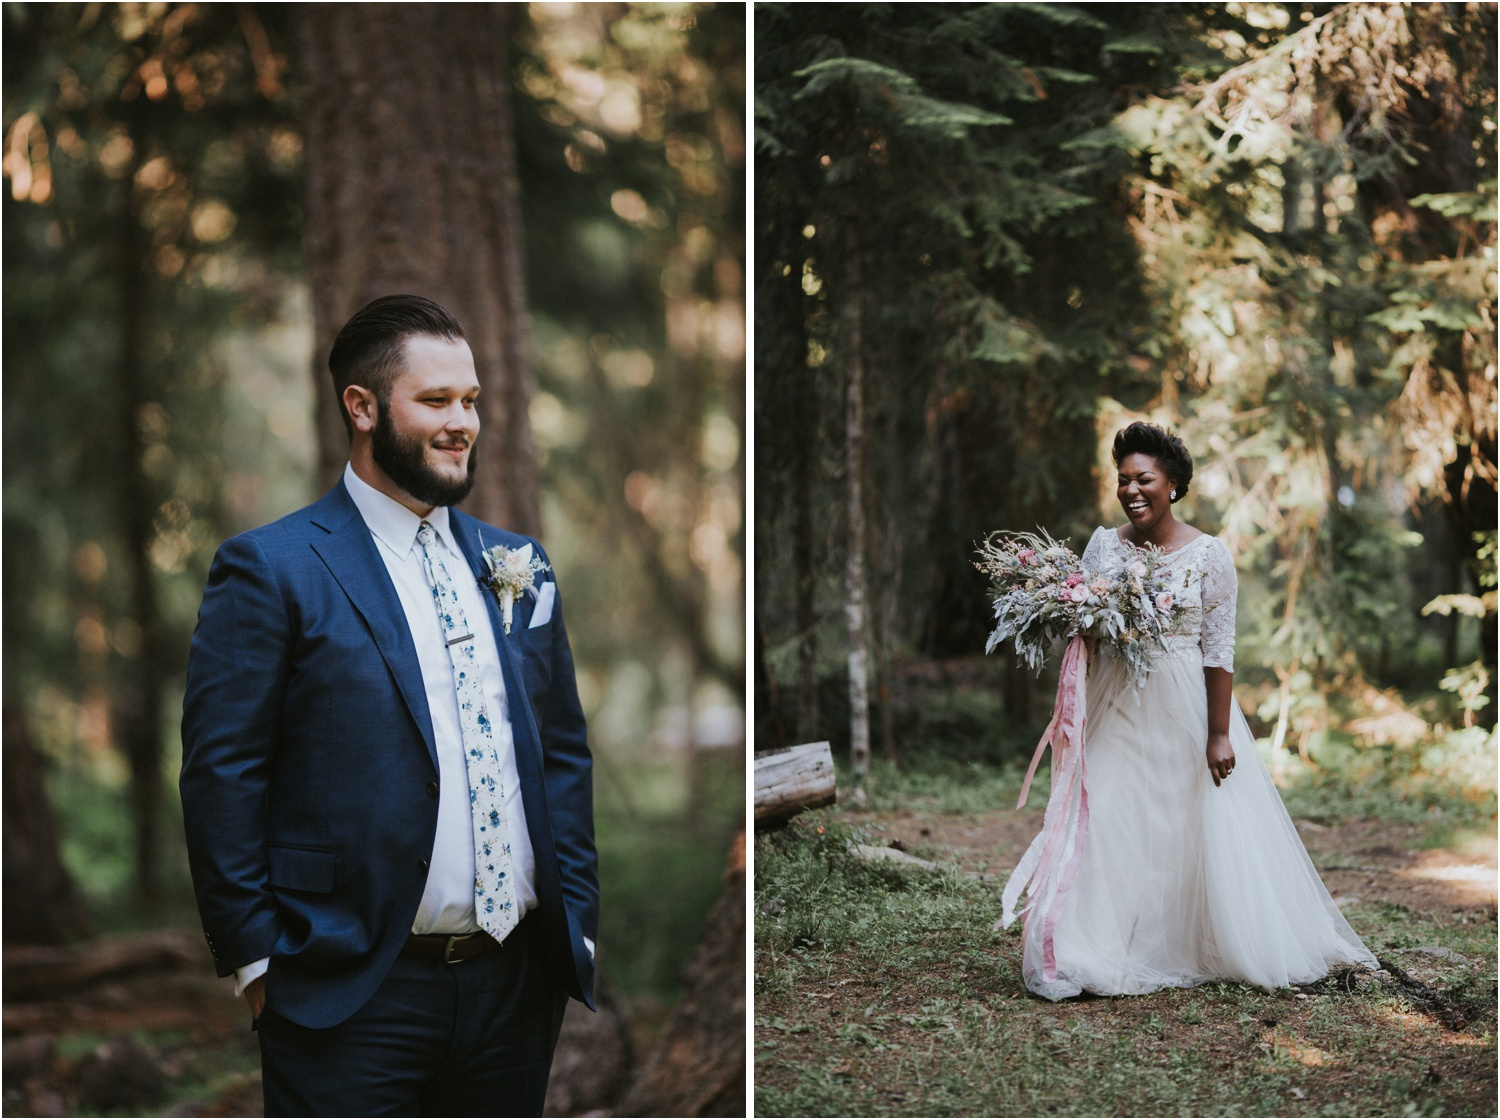 lovestoriesco-amber-phinisee-seattle-mount-rainier-elopement_0038.jpg